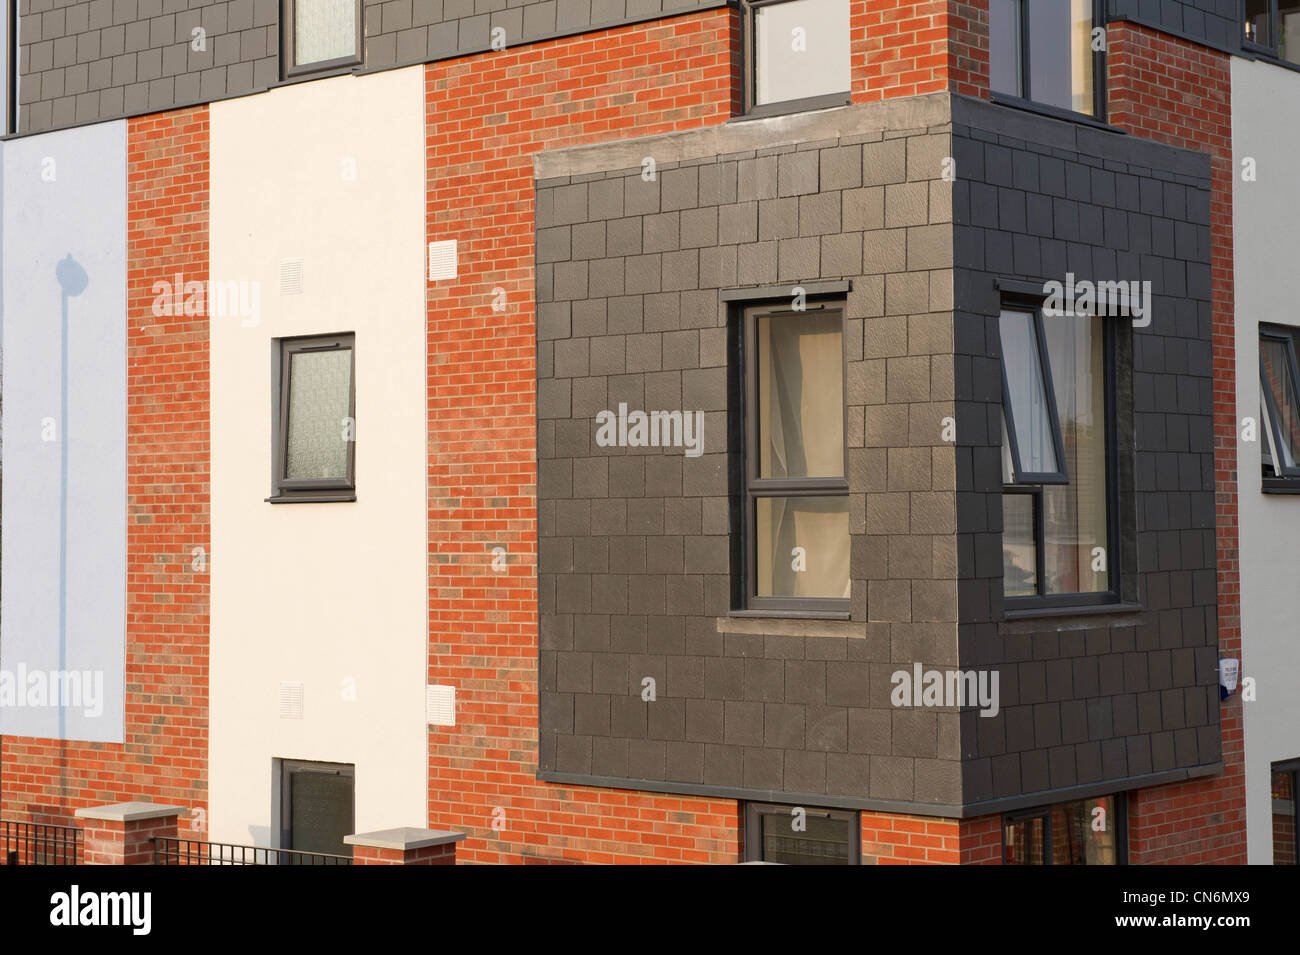 New build social housing - Stock Image